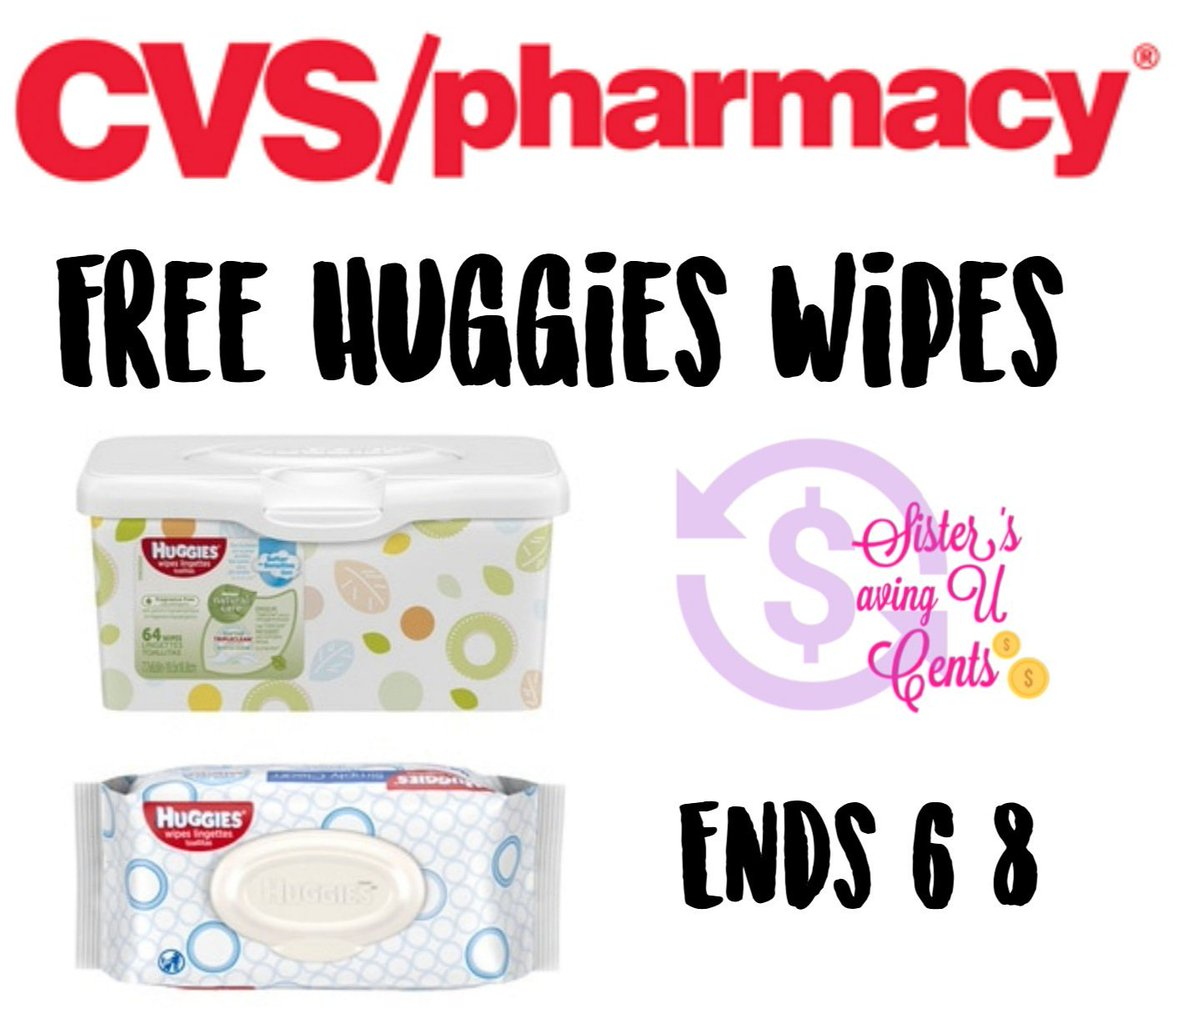 SistersSavingUCents: Free Huggies Baby Wipes At CVS!! https://www.sisterssavingucents.com/2019/06/free-huggies-baby-wipes-at-cvs.html?spref=tw … #cvs #cvsdeals #cvsfreebies